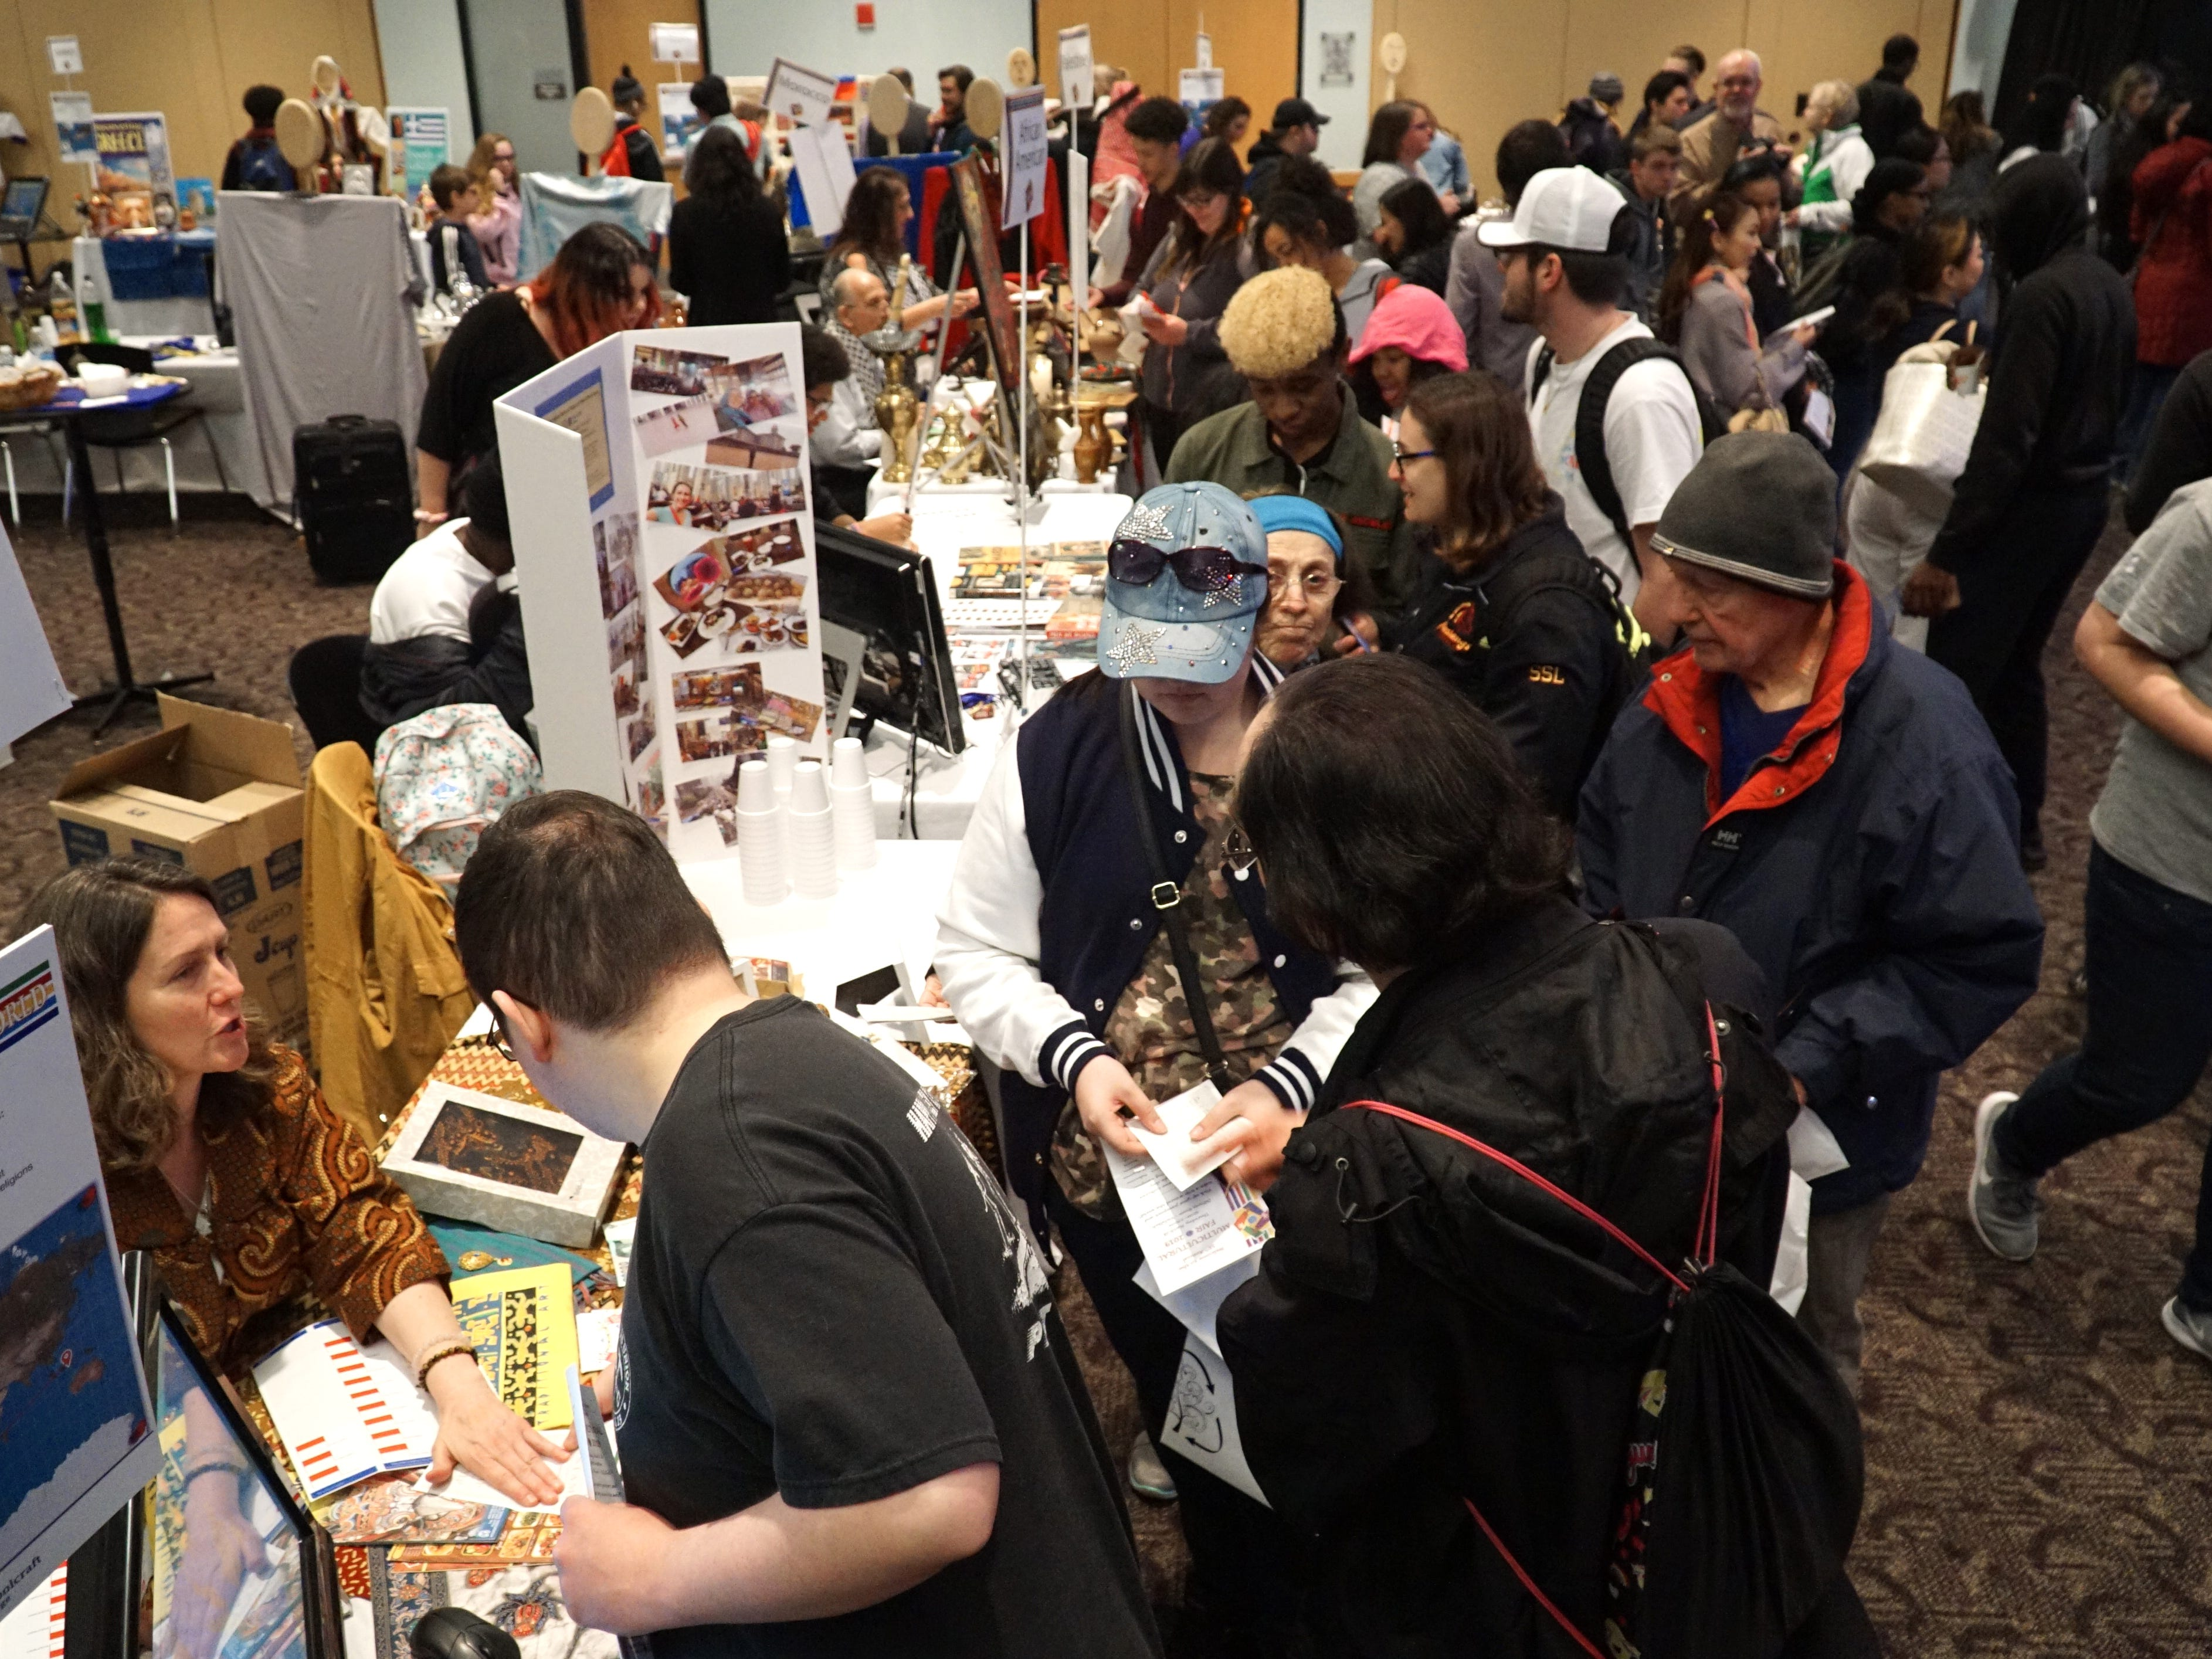 Attendees of the Schoolcraft College Multicultuiral Fair check out various information booths in the DiPonion room on March 28, 2019.